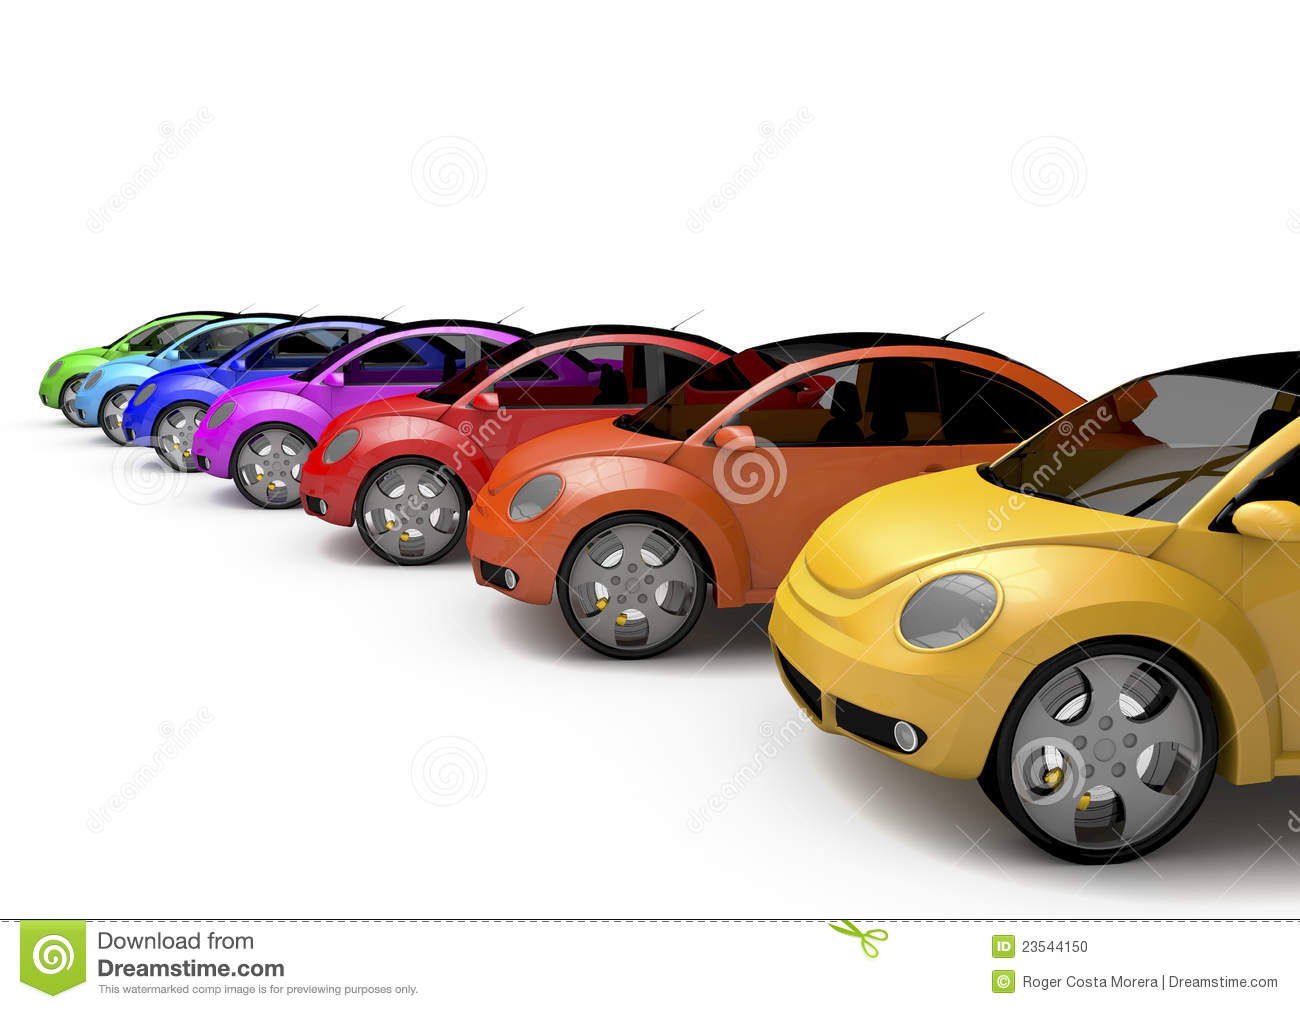 Line of cars of many colors on a white background, designed in 3d.